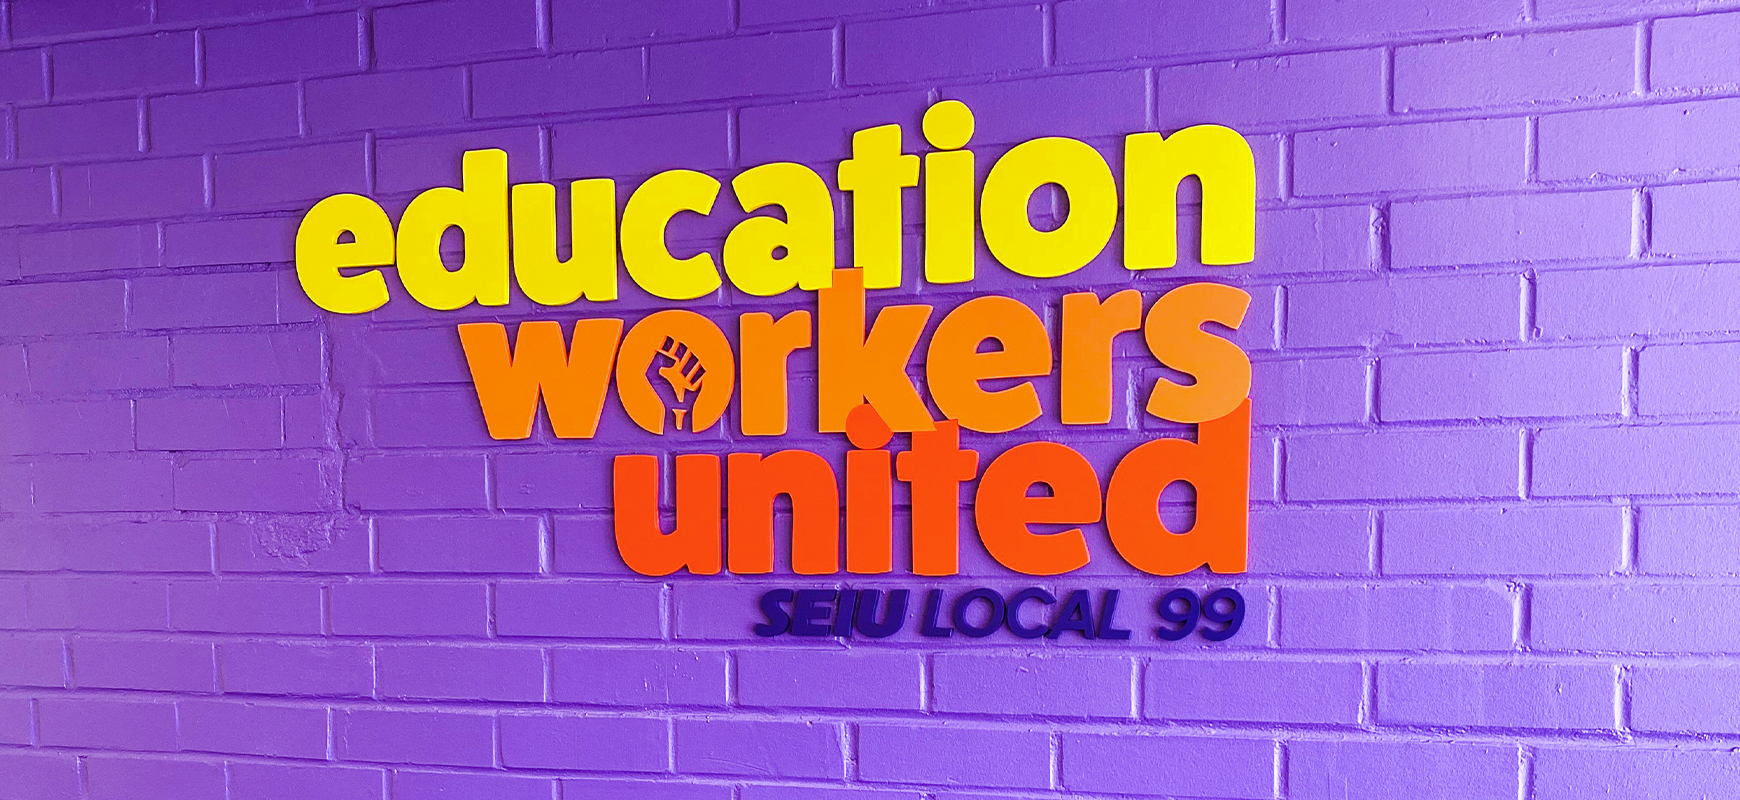 Education Workers United custom interior sign with painted colorful 3D sign letters made of acrylic for branding indoors